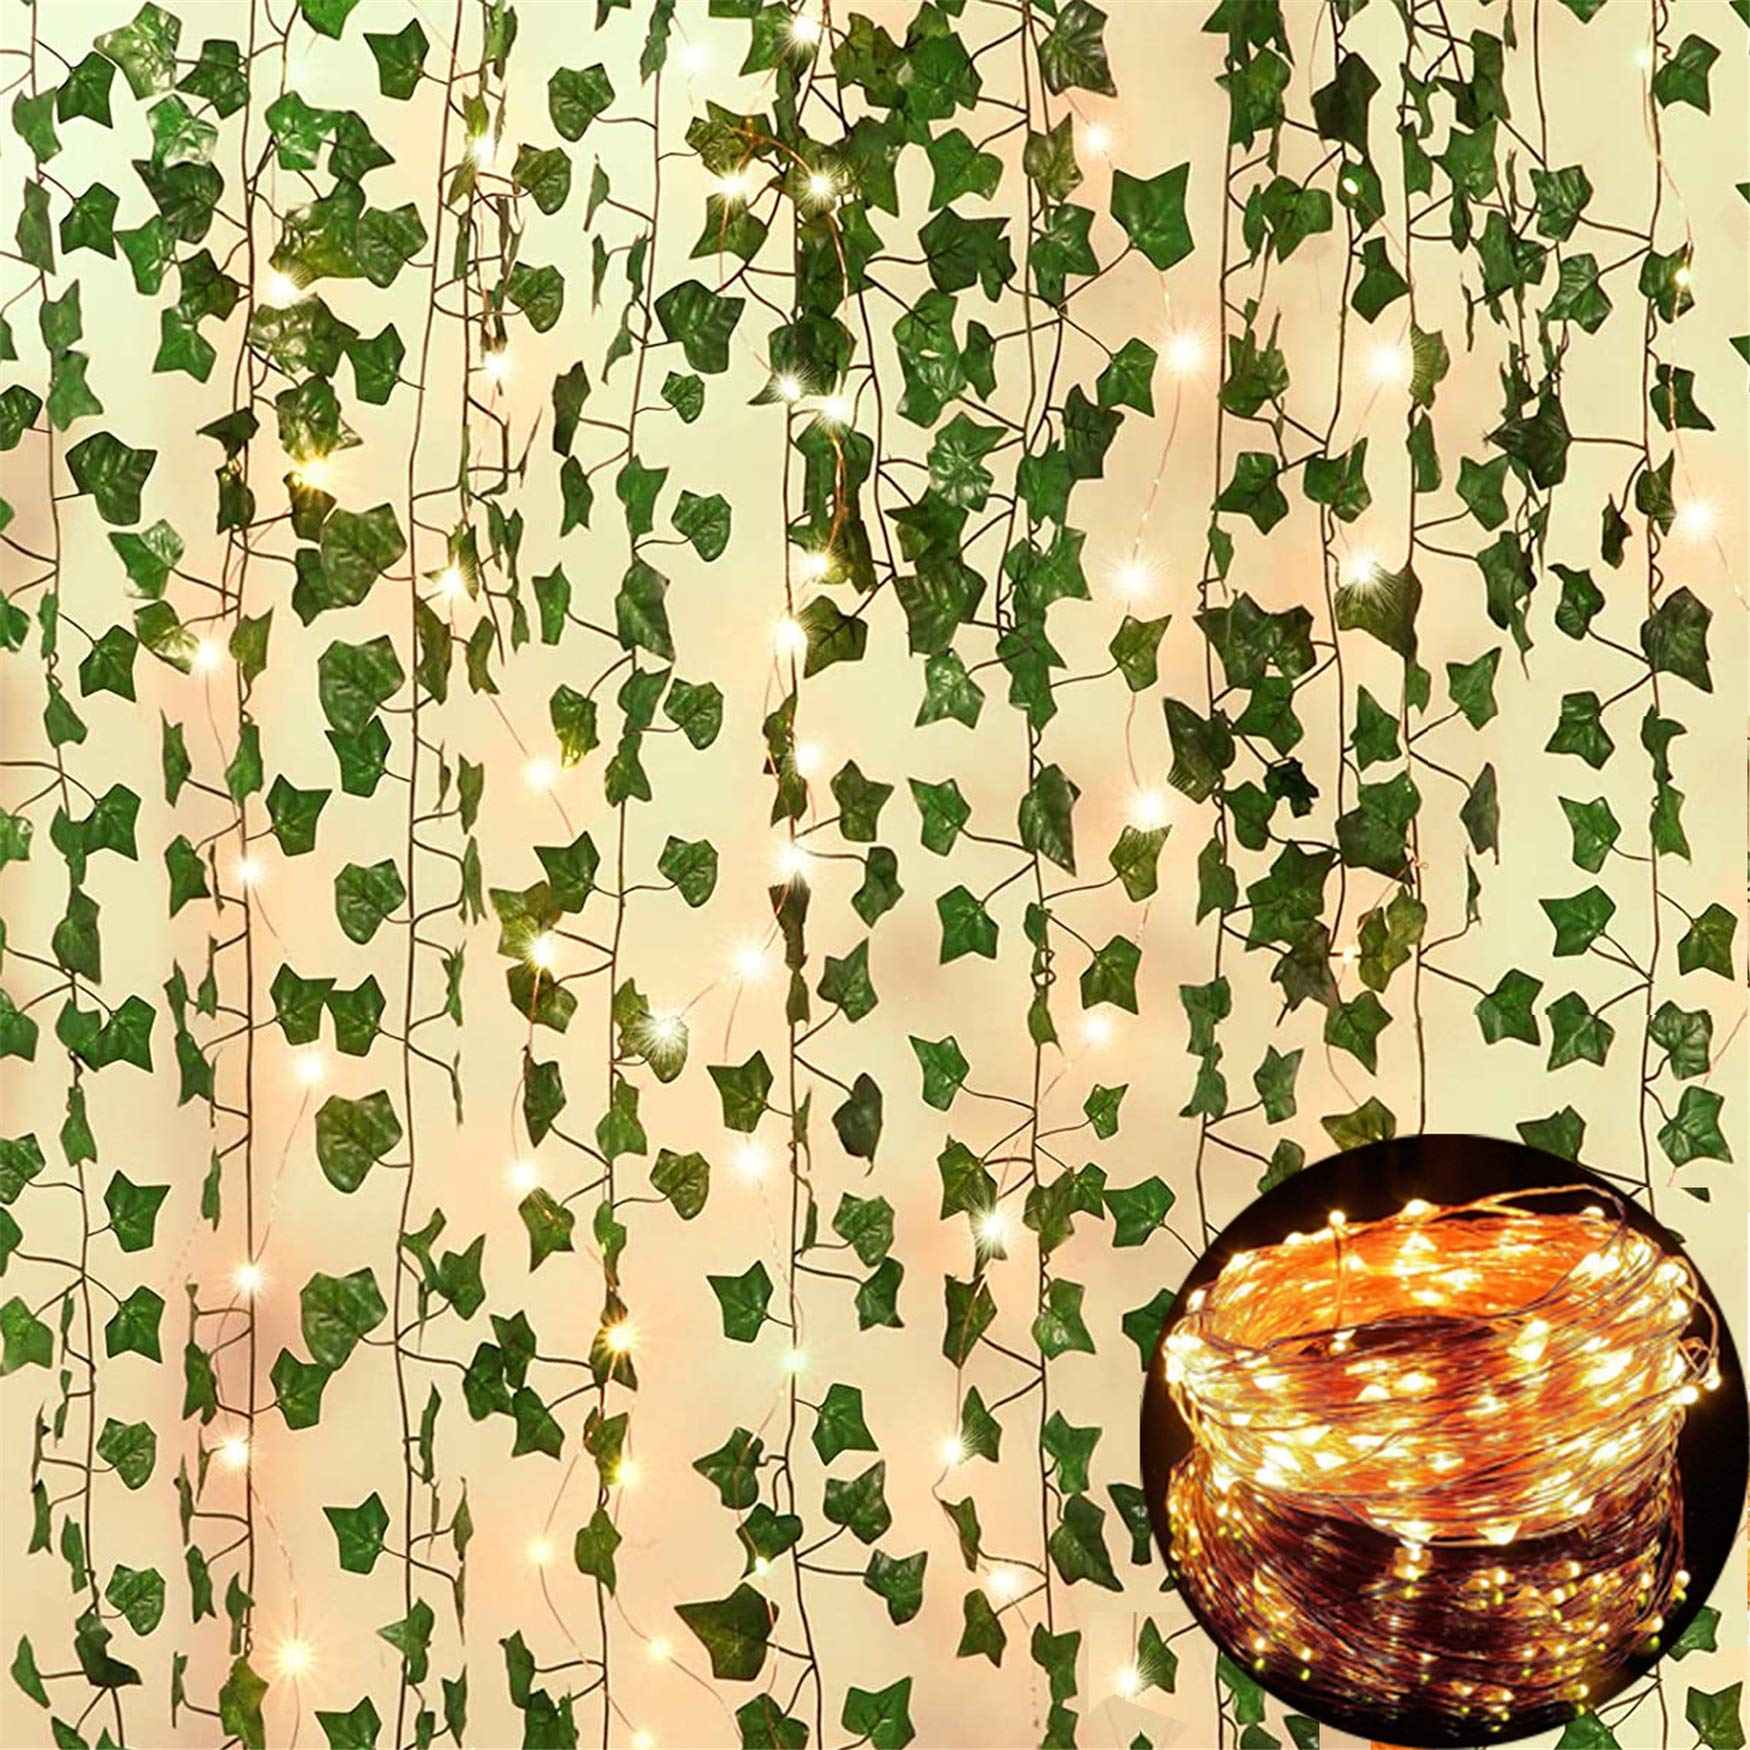 12 Pack Fake Vines for Room Decor with 100 LED String Light Artificial Ivy Garland Hanging Plants Faux Greenery Leaves Bedroom Aesthetic Decor for Home Garden Wall Wedding